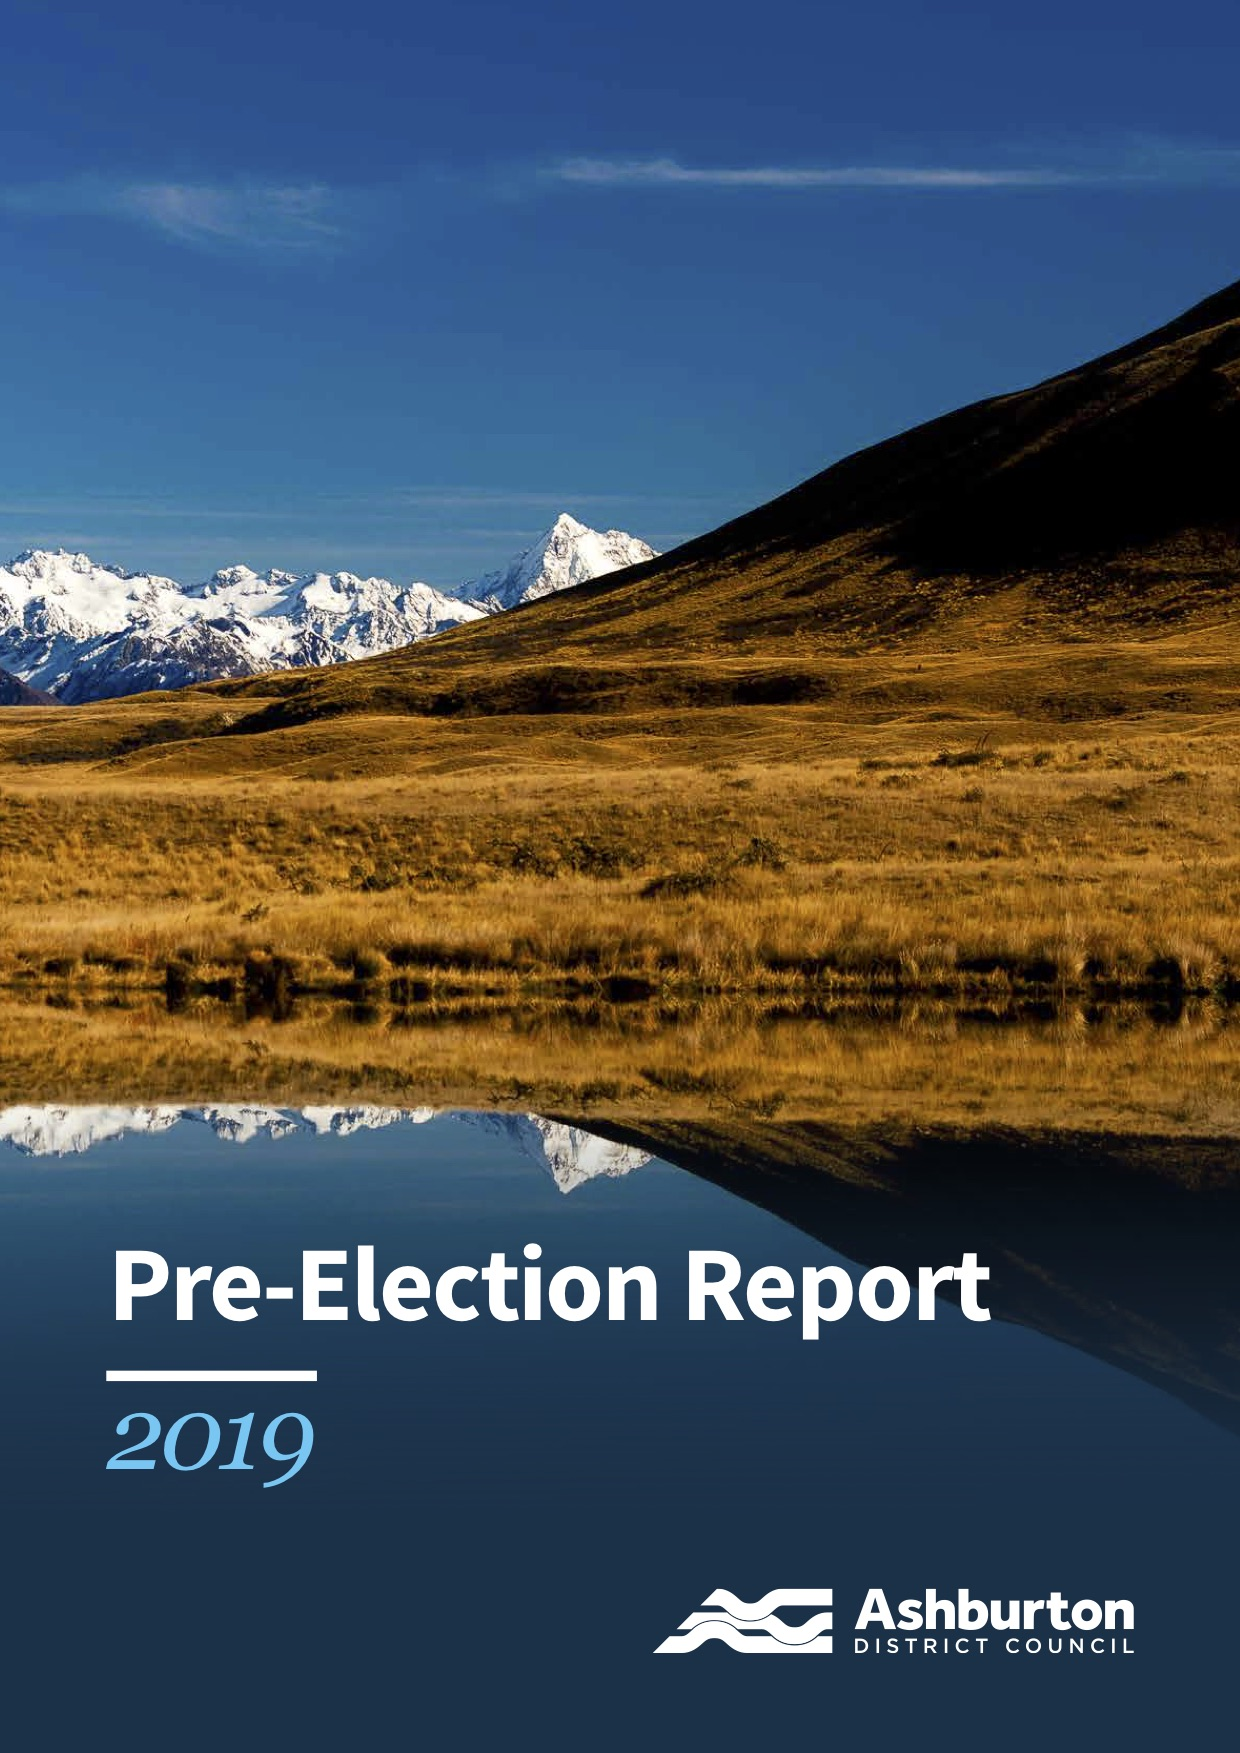 Pre-election report image